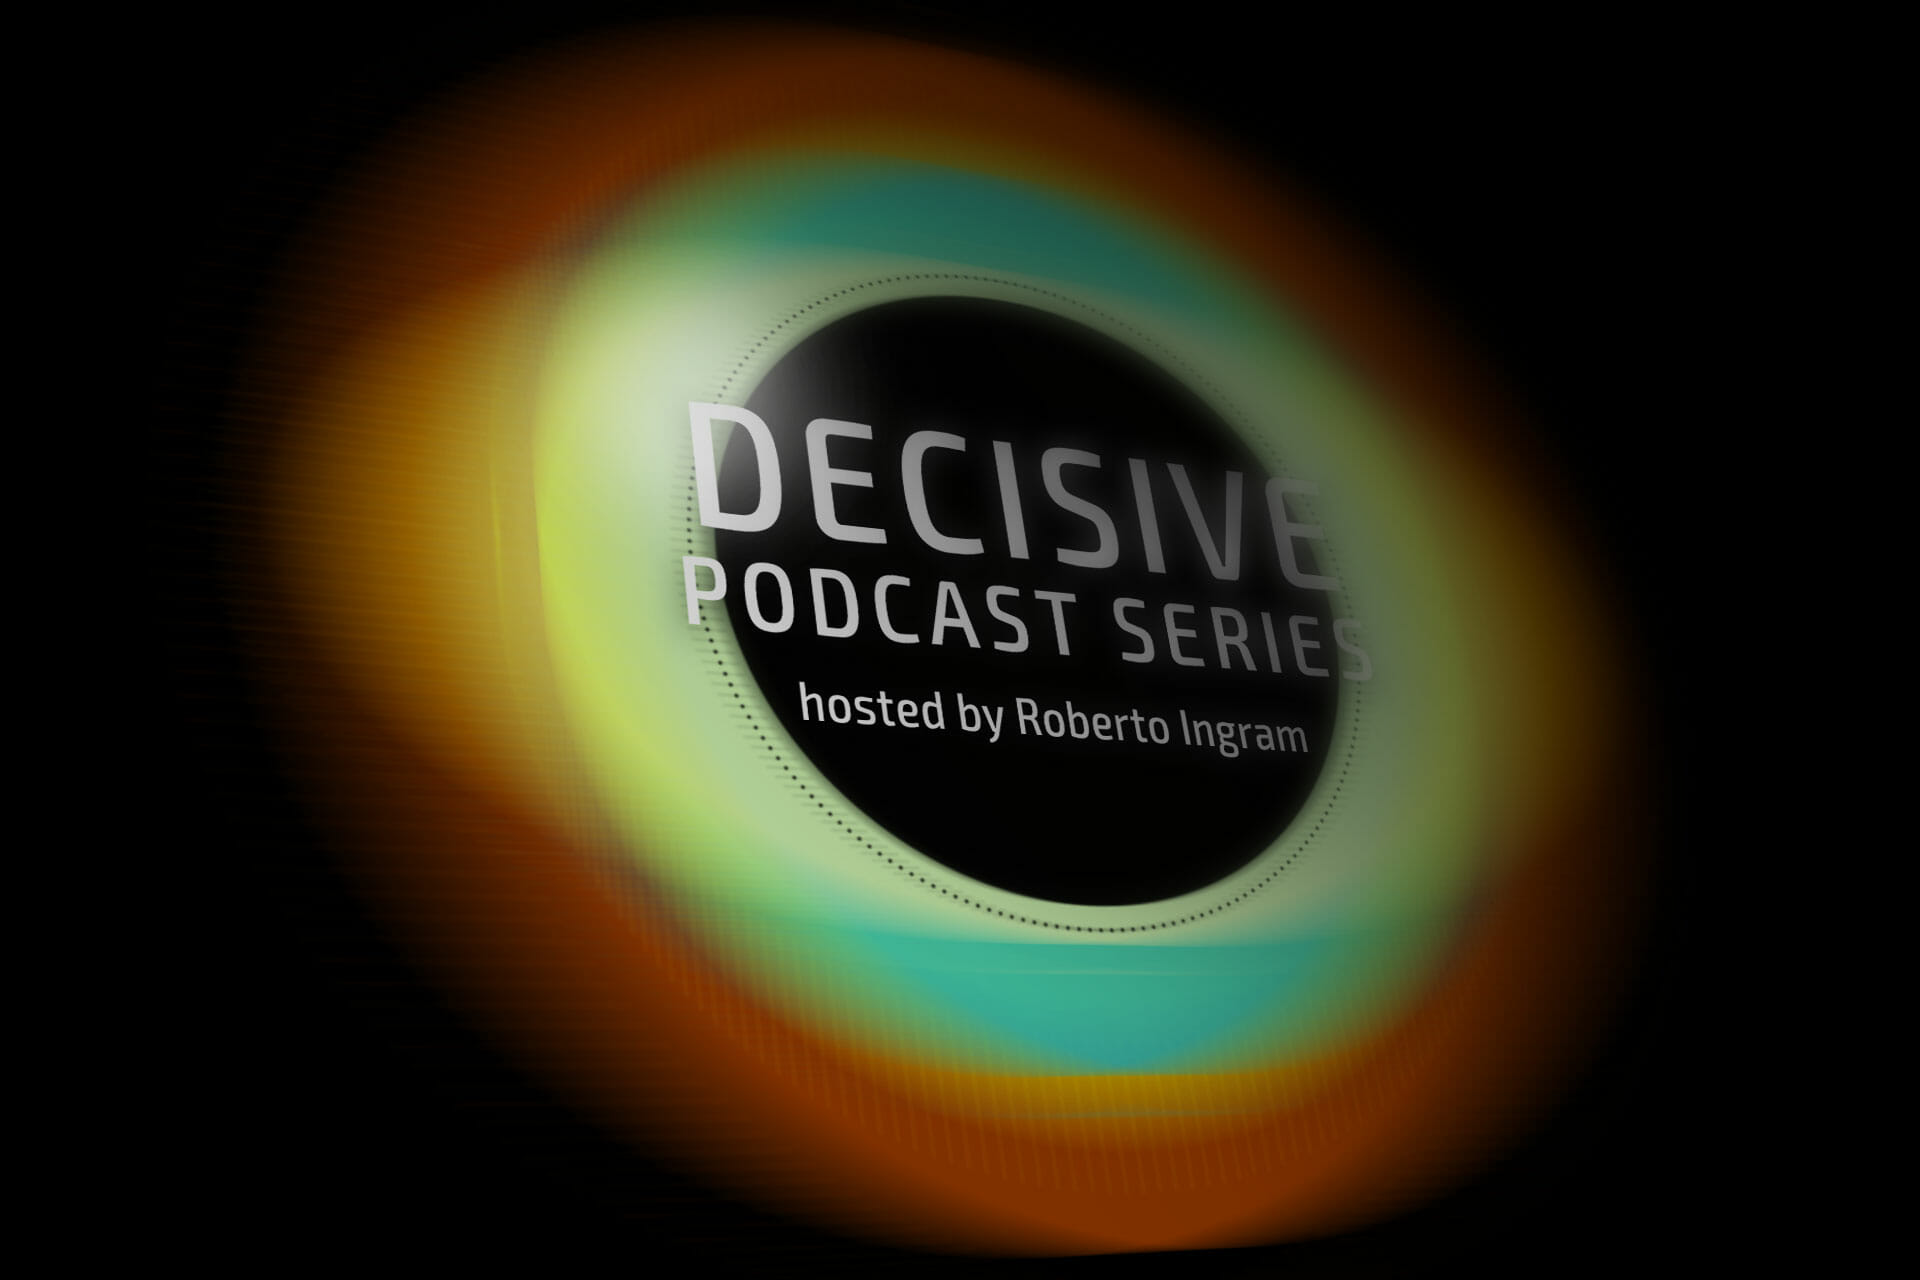 Decisive Podcast Series Profil